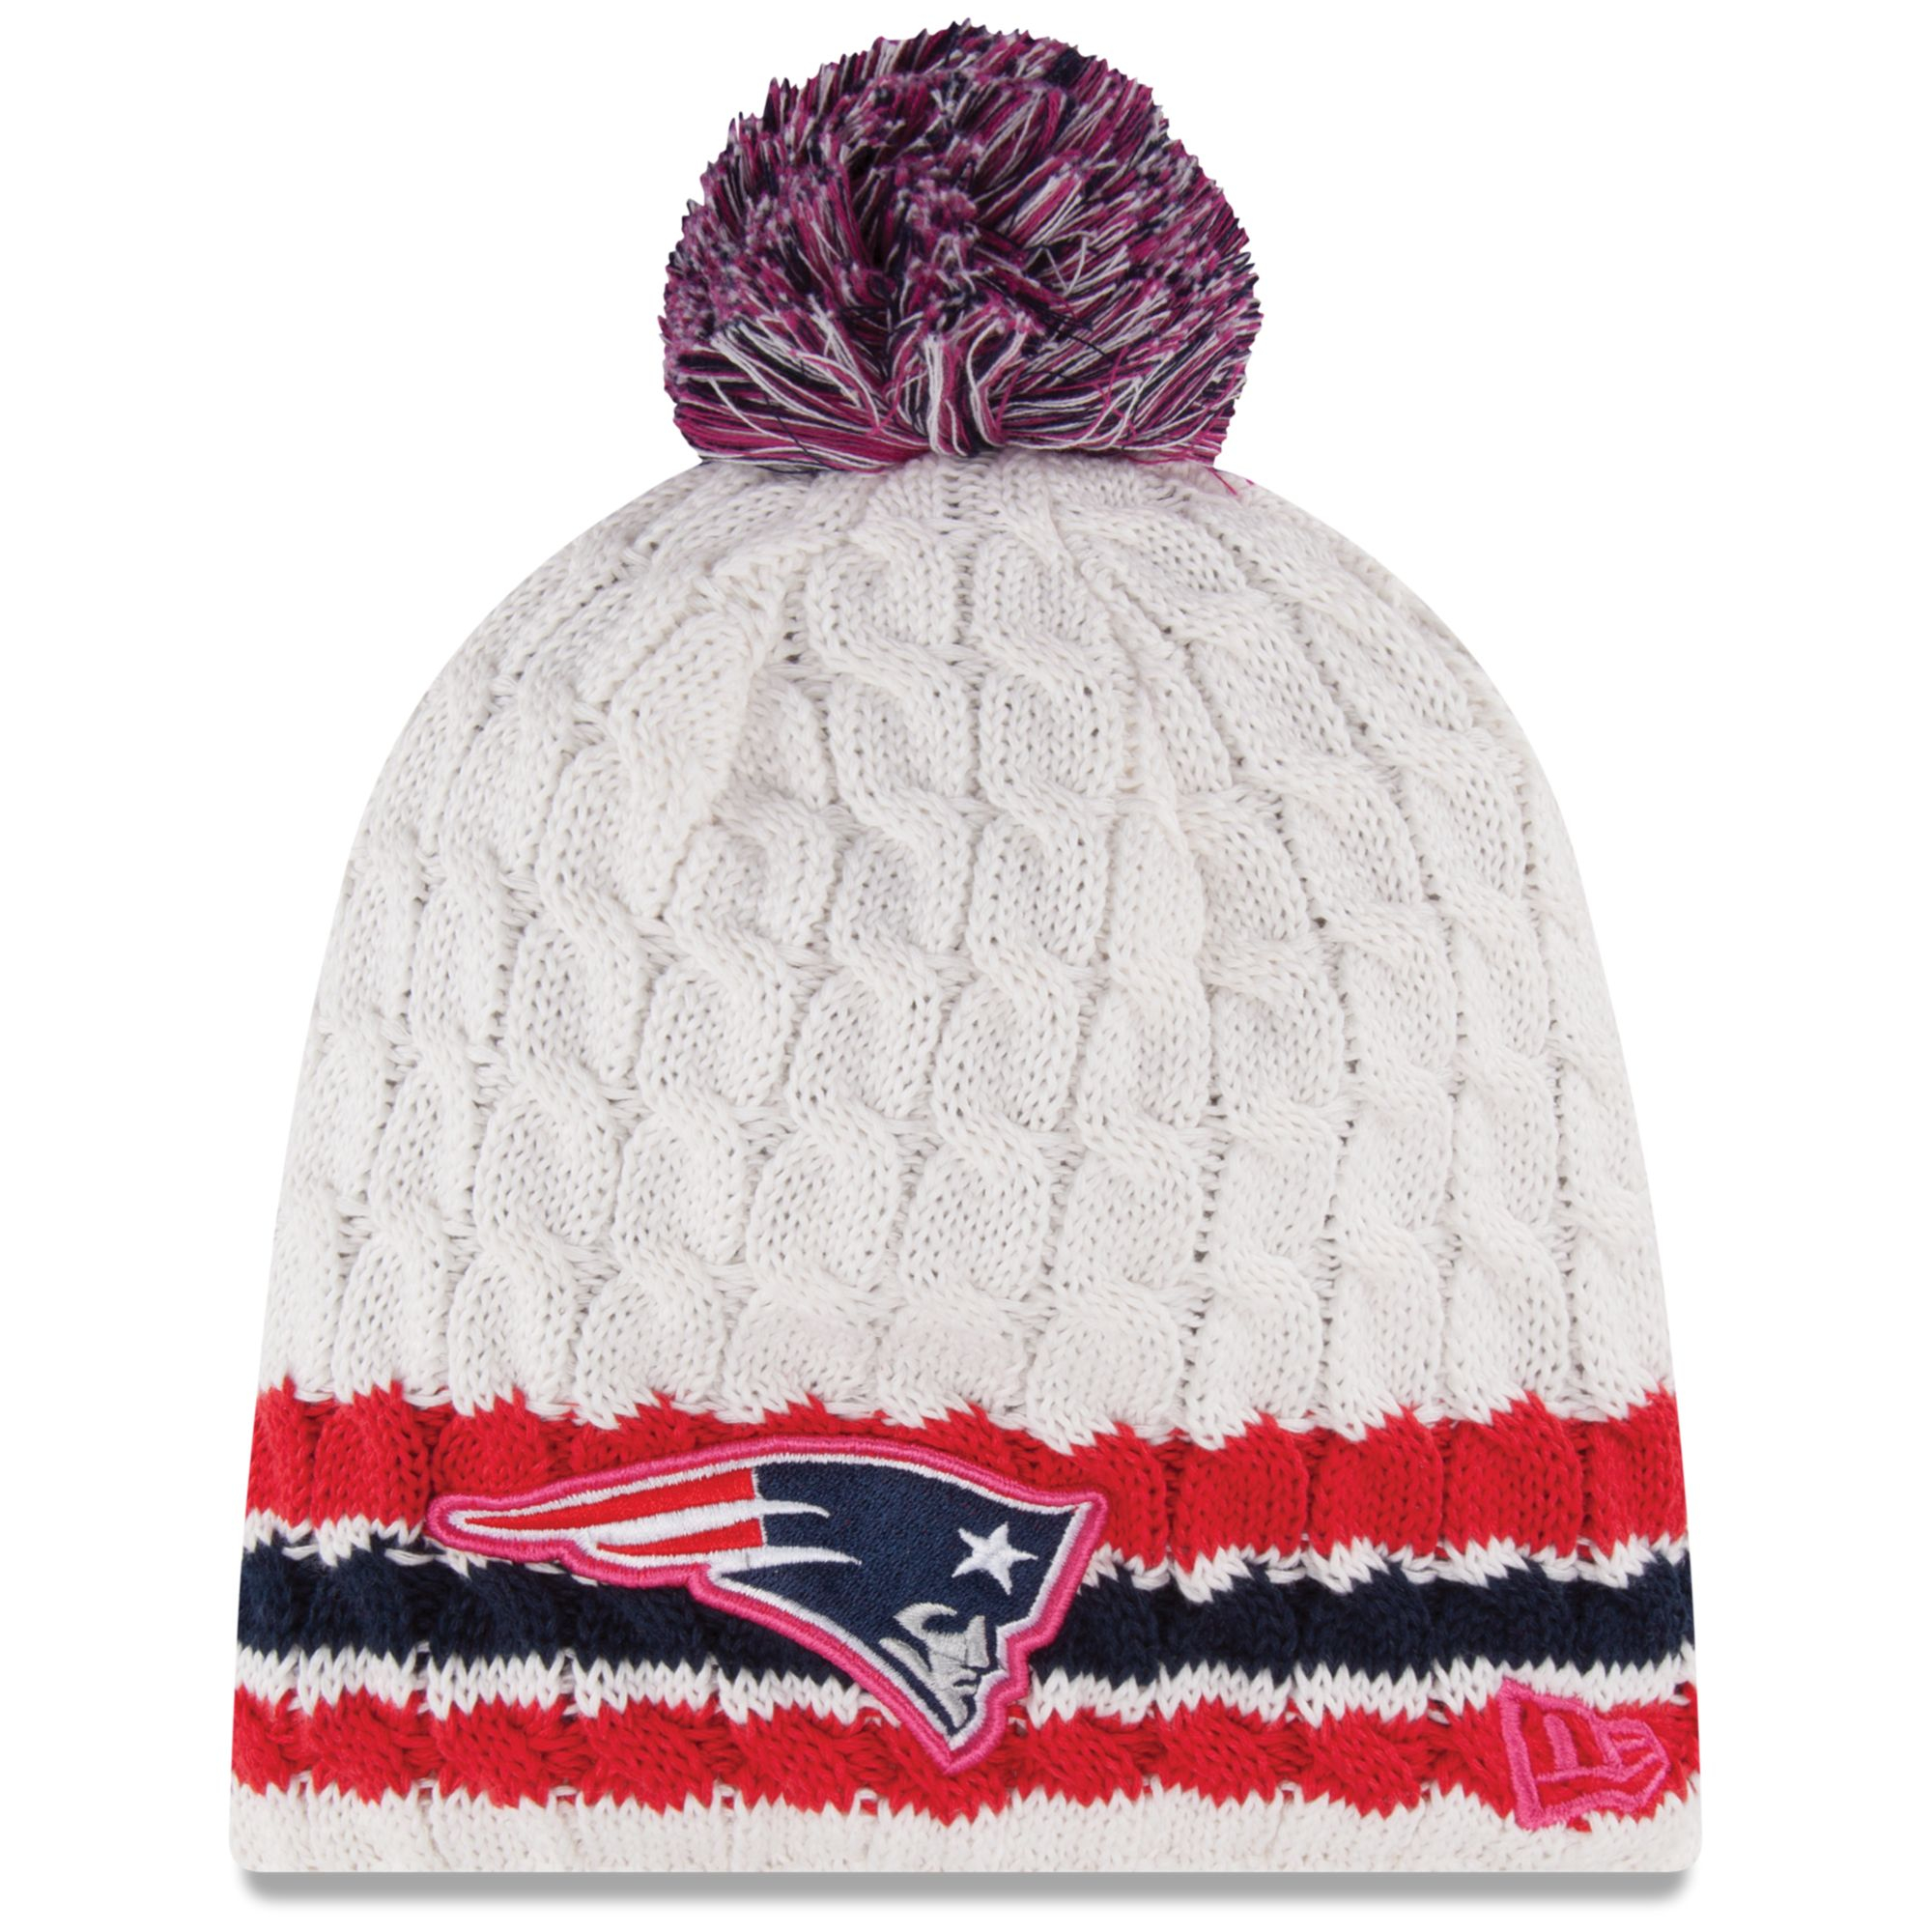 Lyst - KTZ Womens New England Patriots Breast Cancer Awareness Knit ... ab45083a1